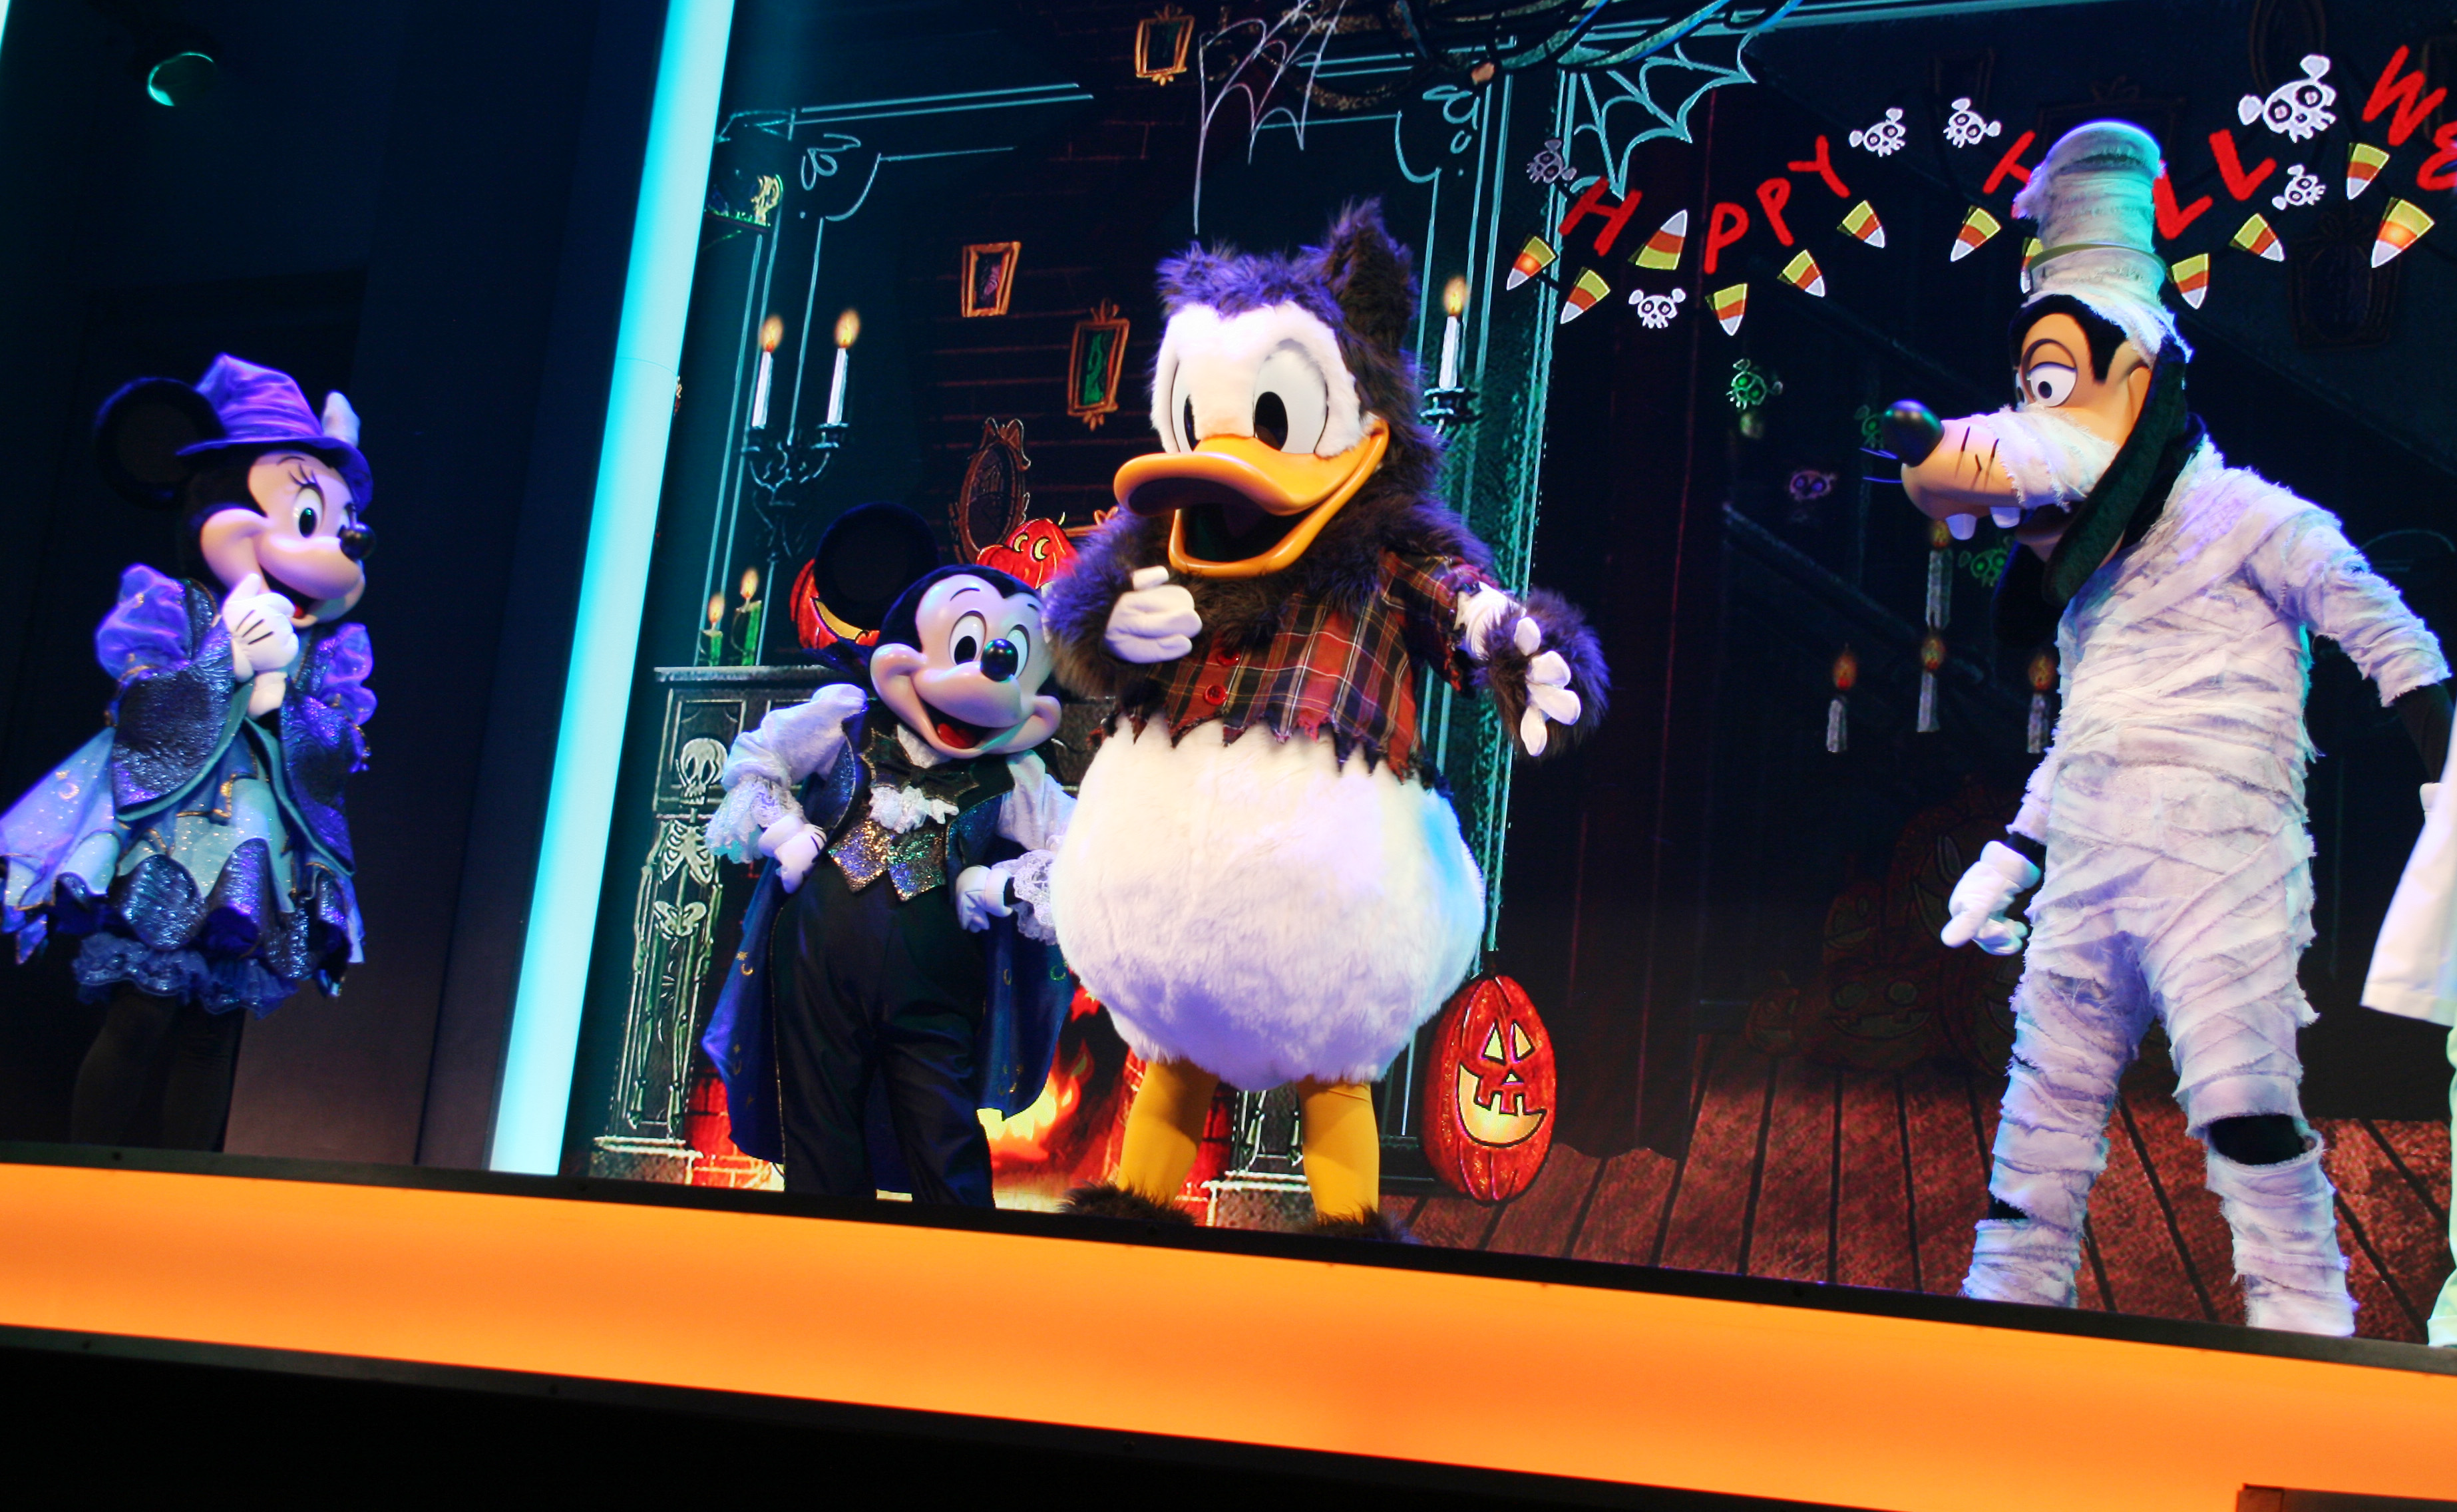 Characters at Mickey's Trick and Treat Show